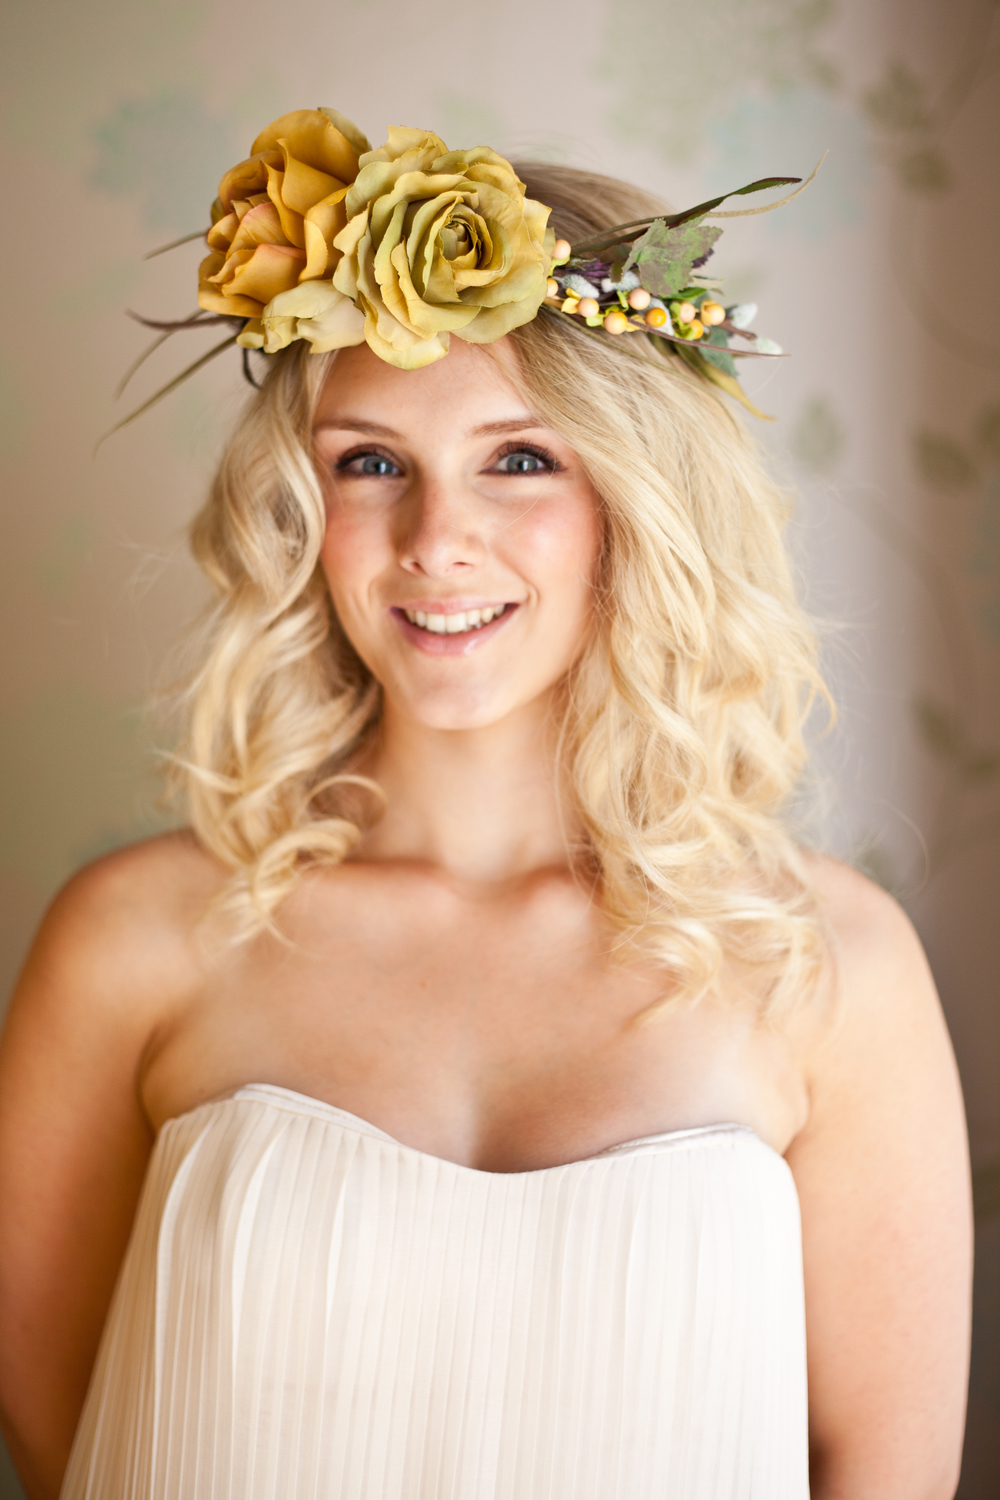 Statement floral head wreath